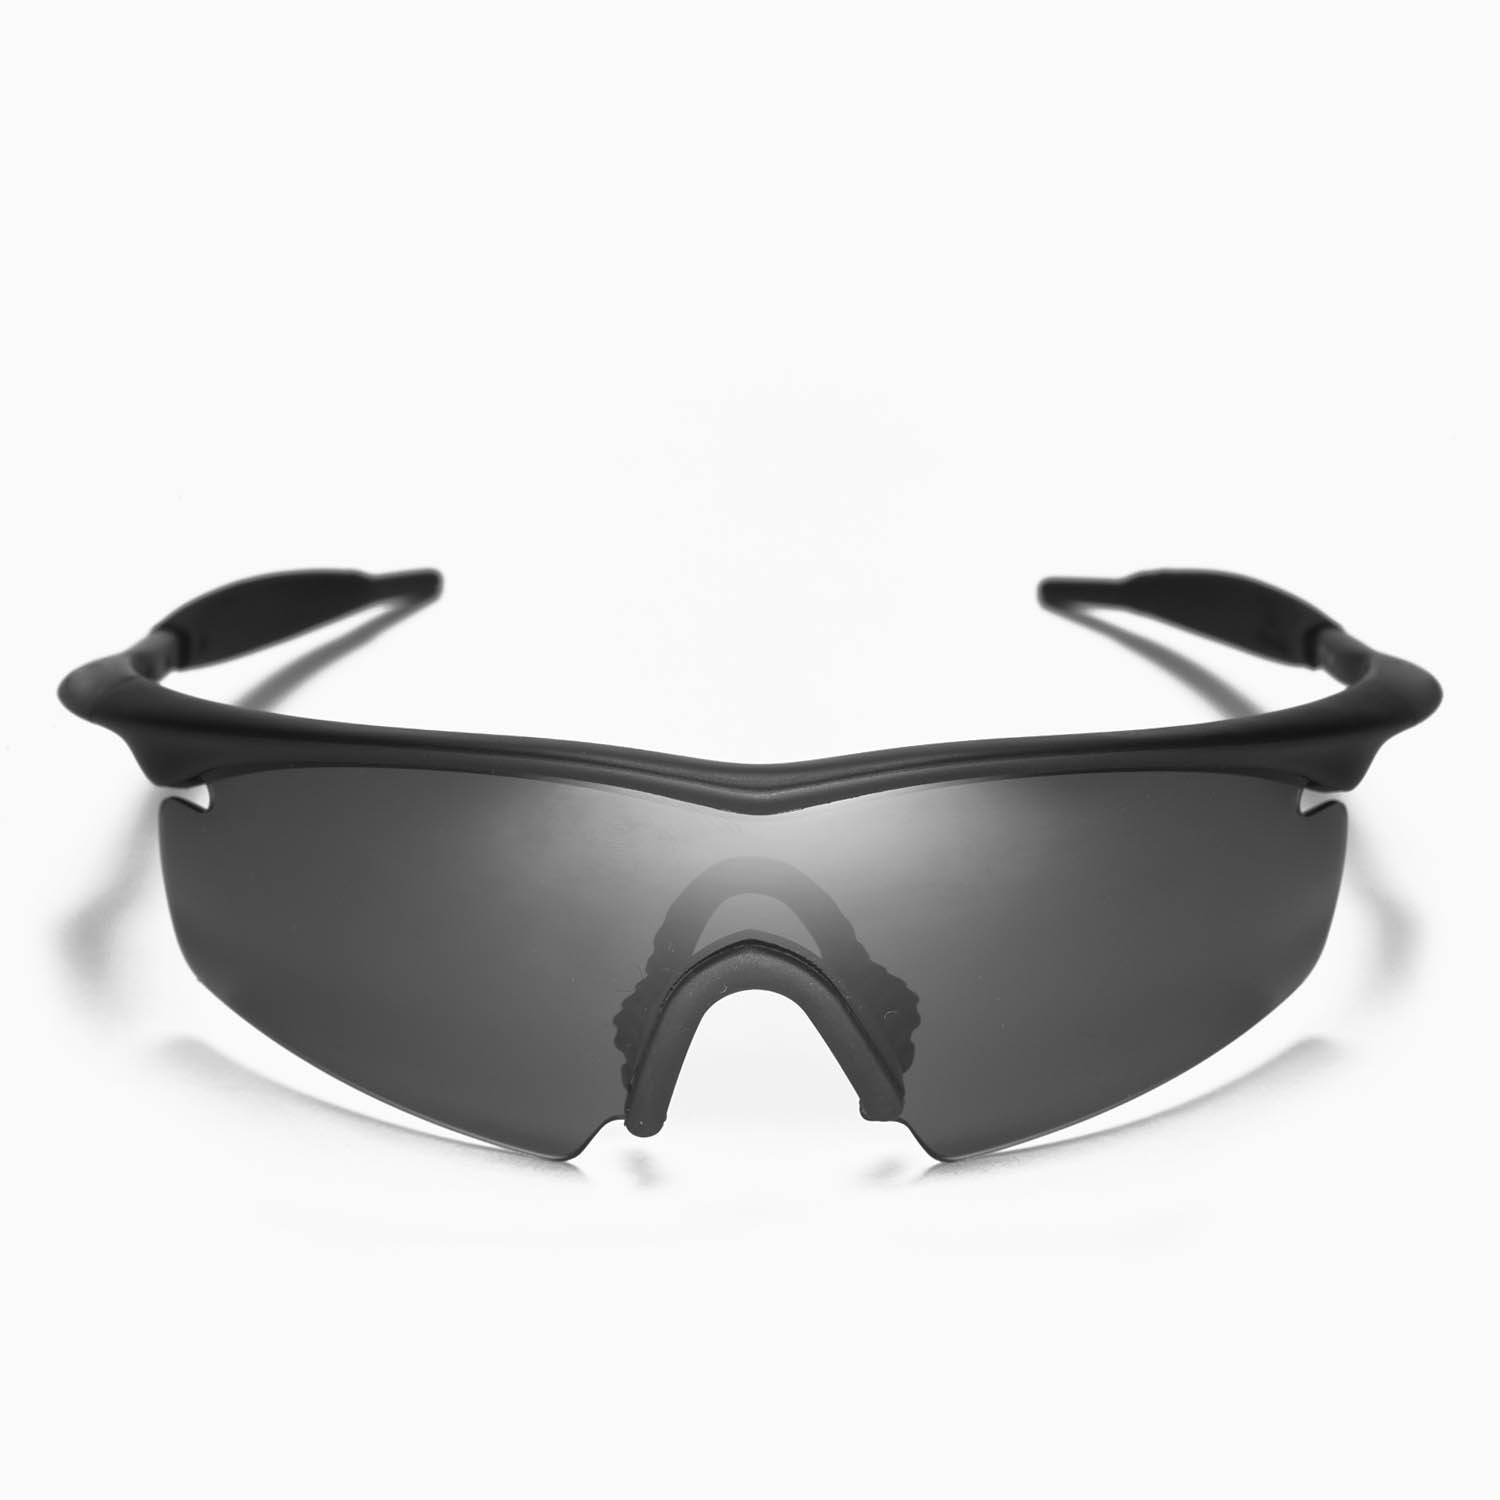 New Wl Polarized Black Replacement Lenses For Oakley M